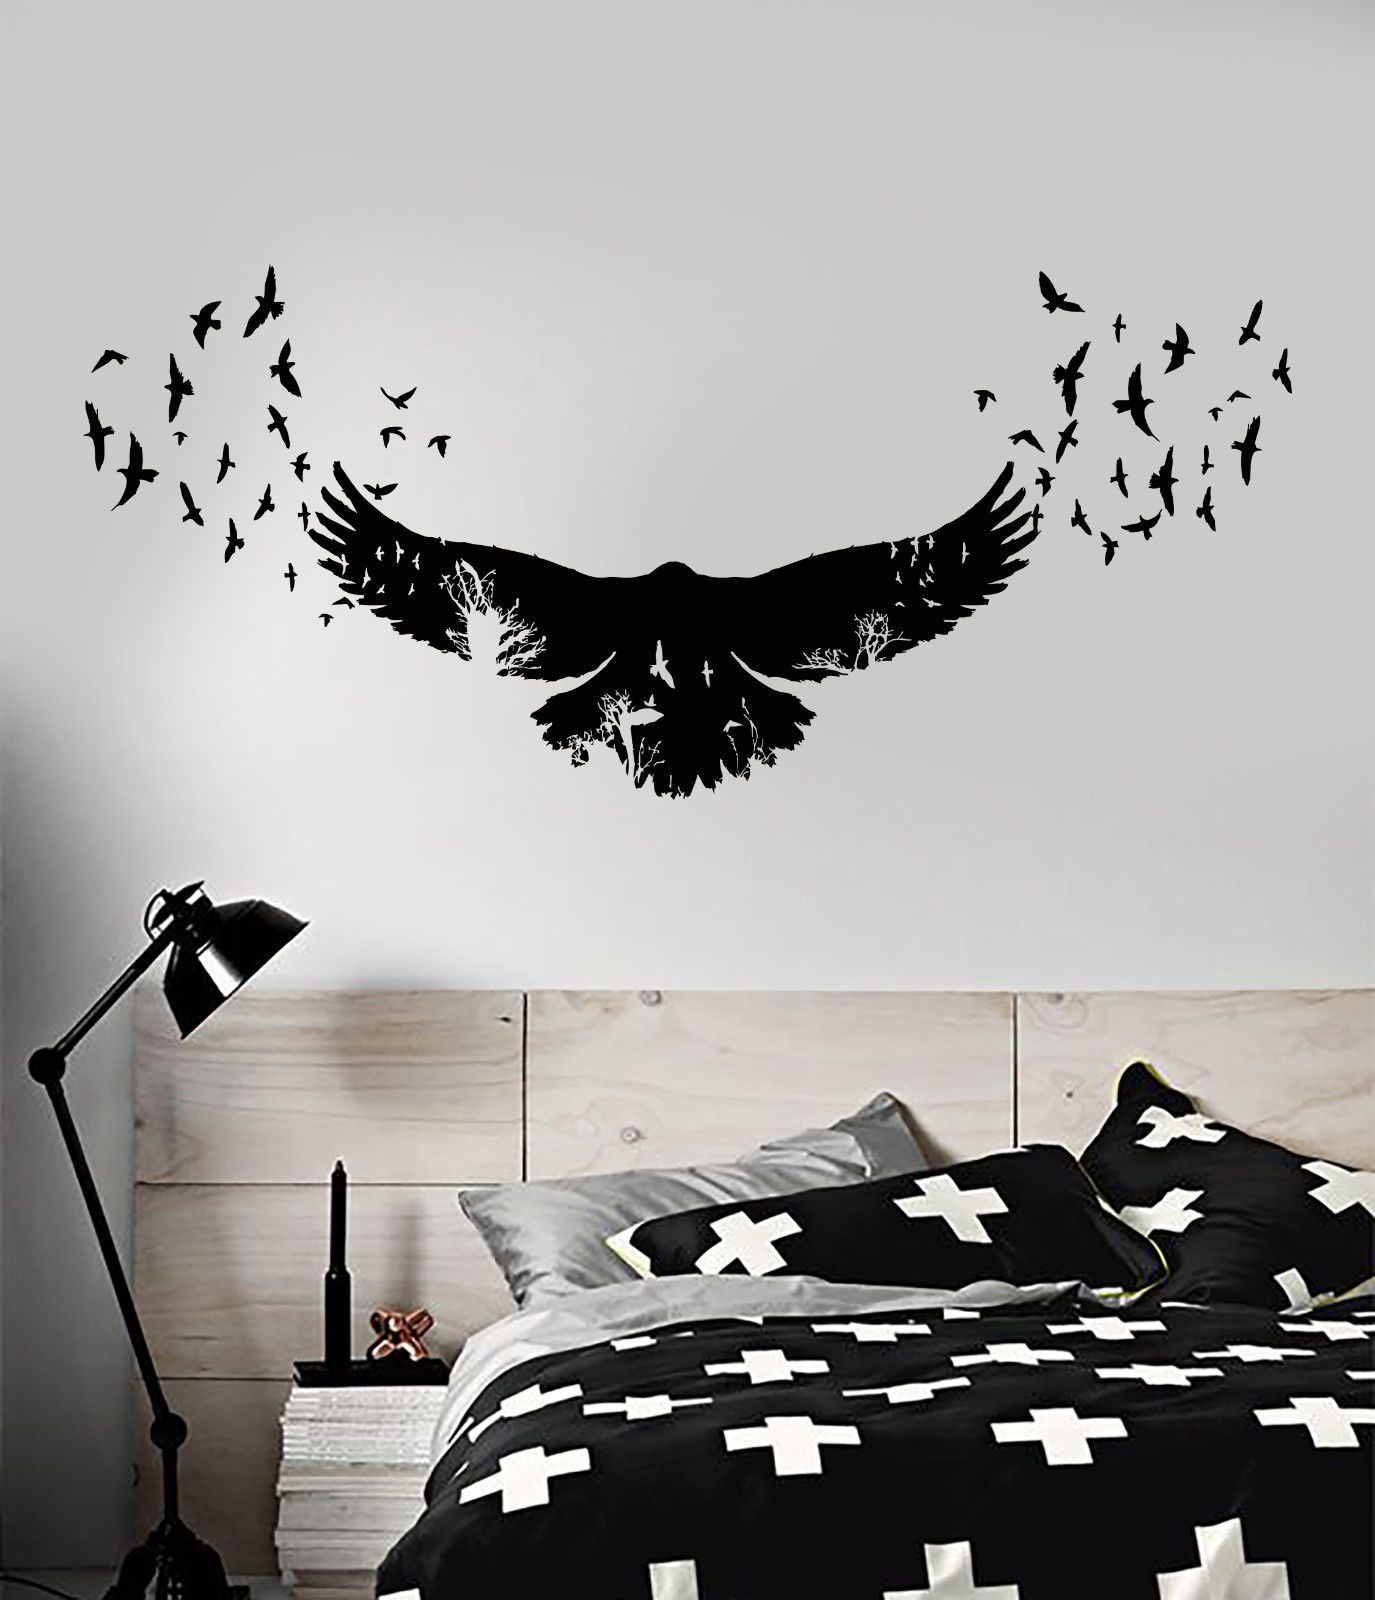 Details about Vinyl Wall Decal Raven Birds Gothic Style